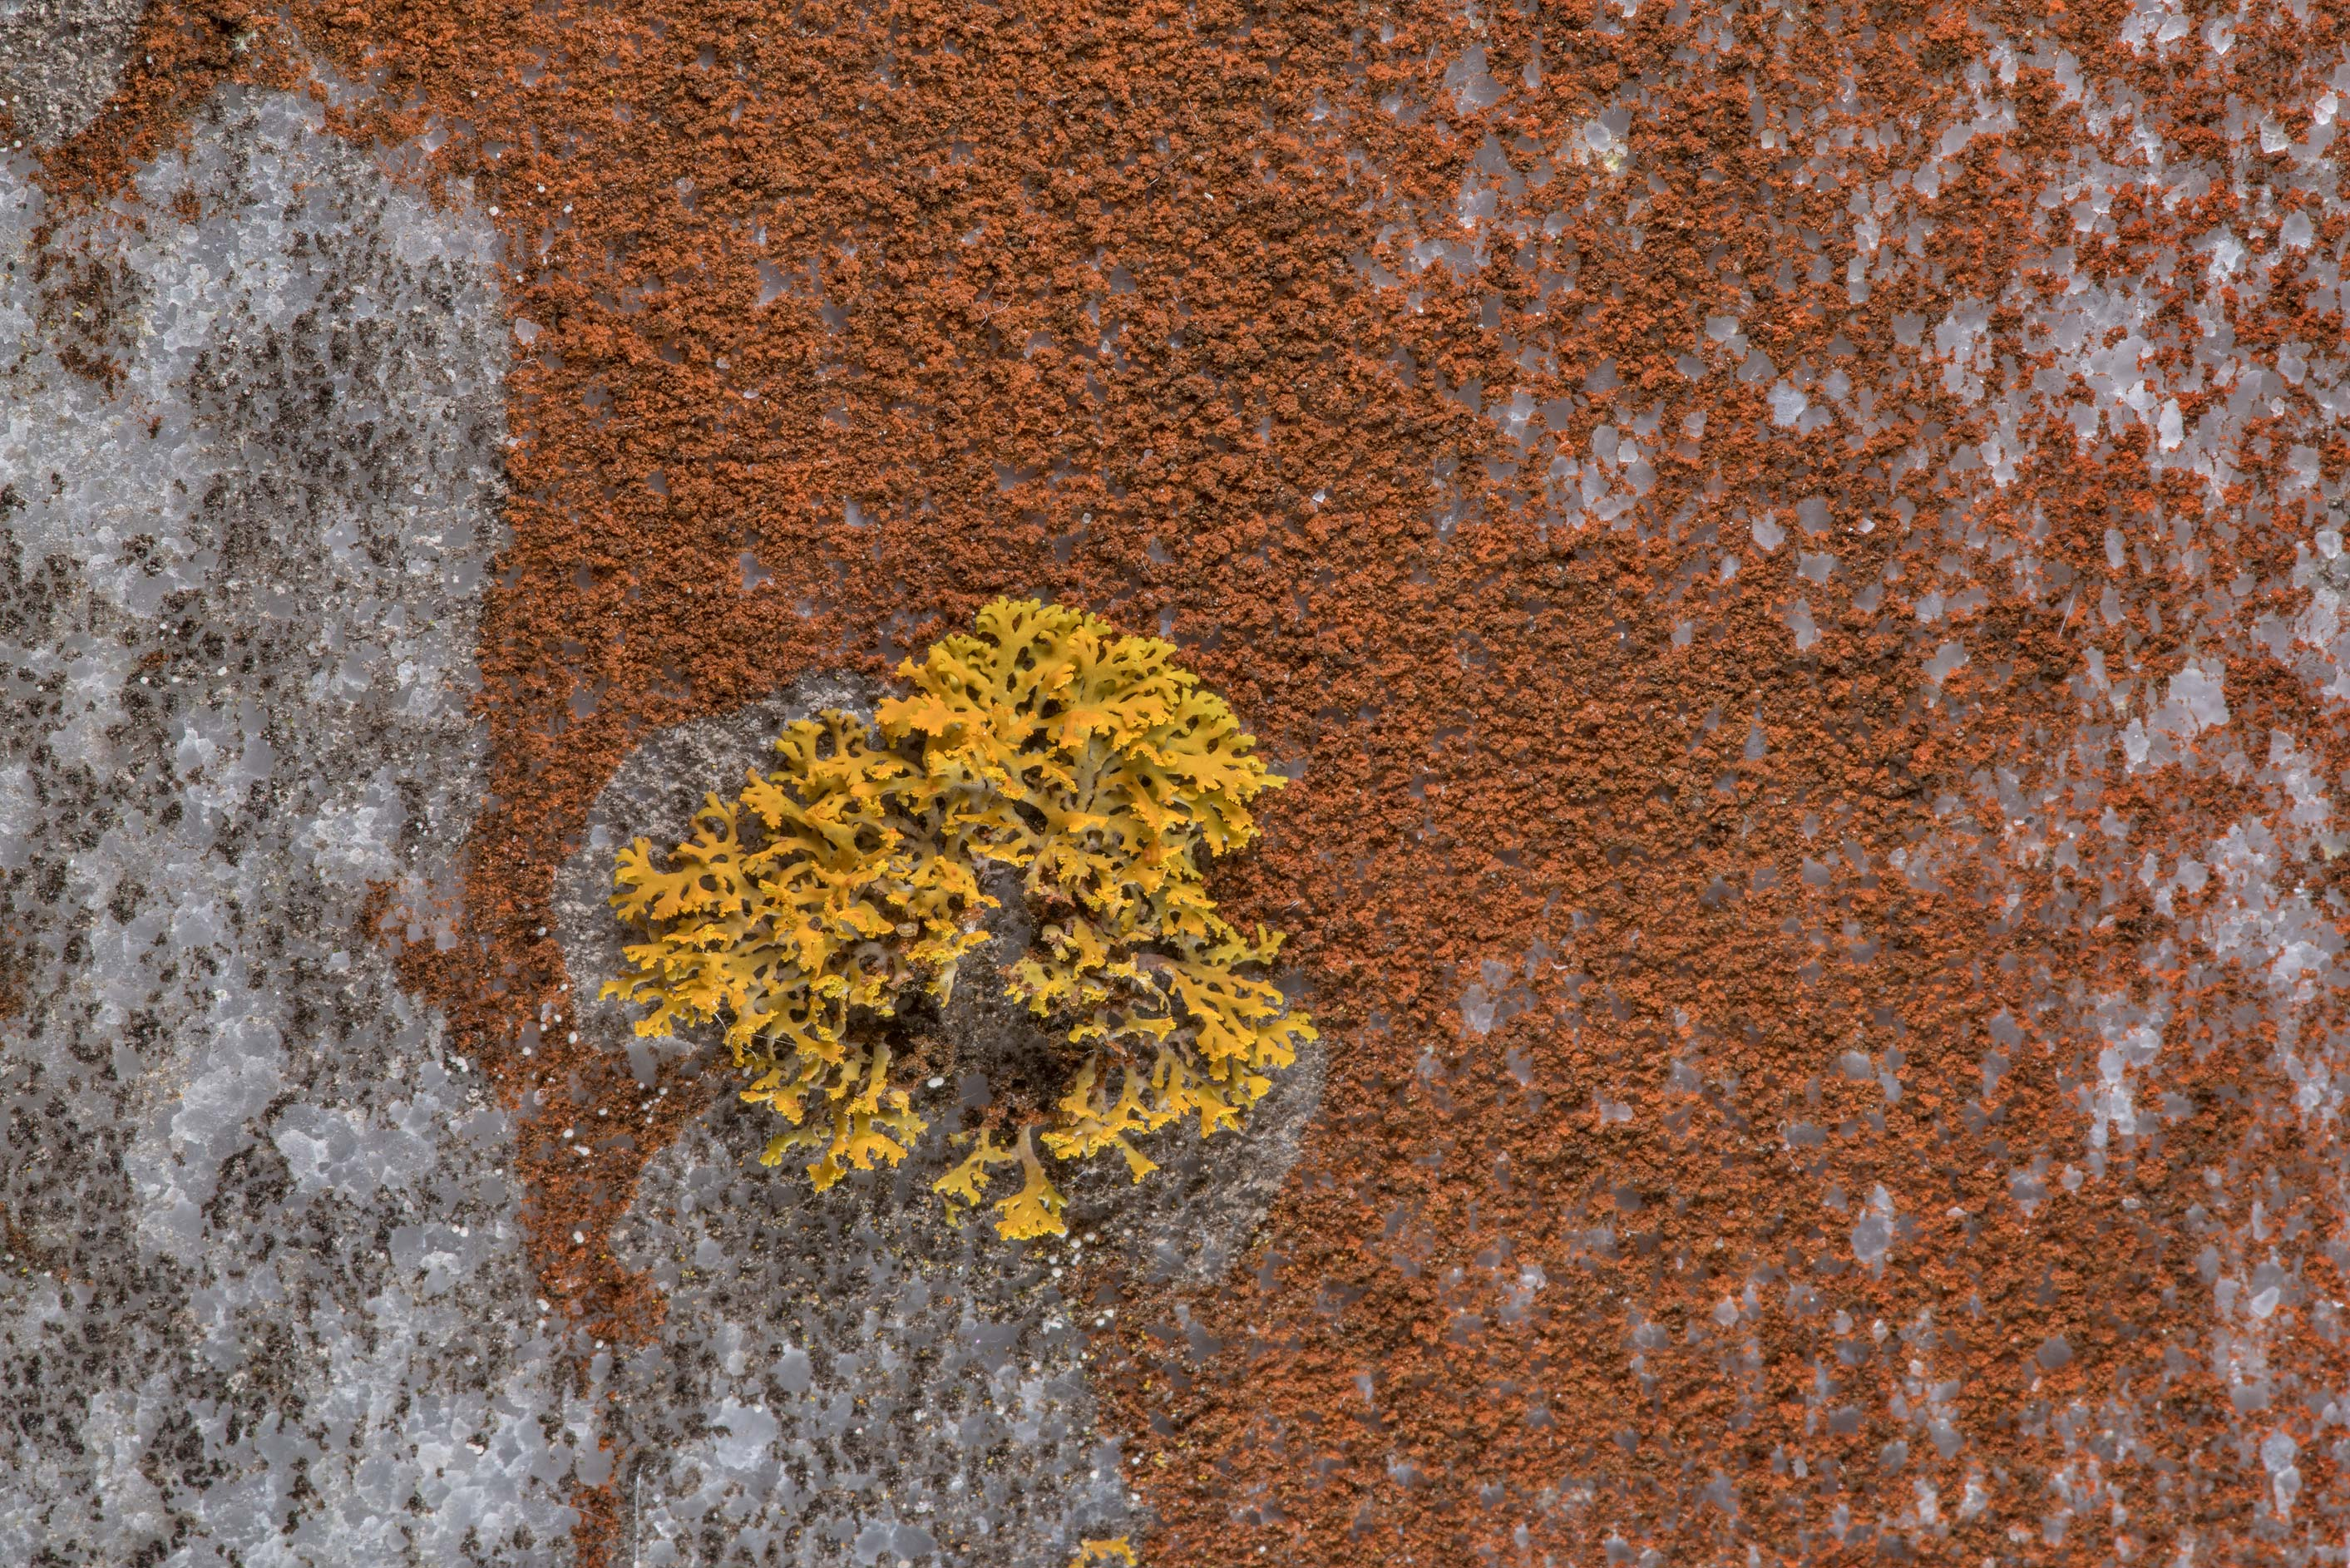 Sunburst lichen Xanthomendoza weberi and some...Cemetery near Huntsville, Texas